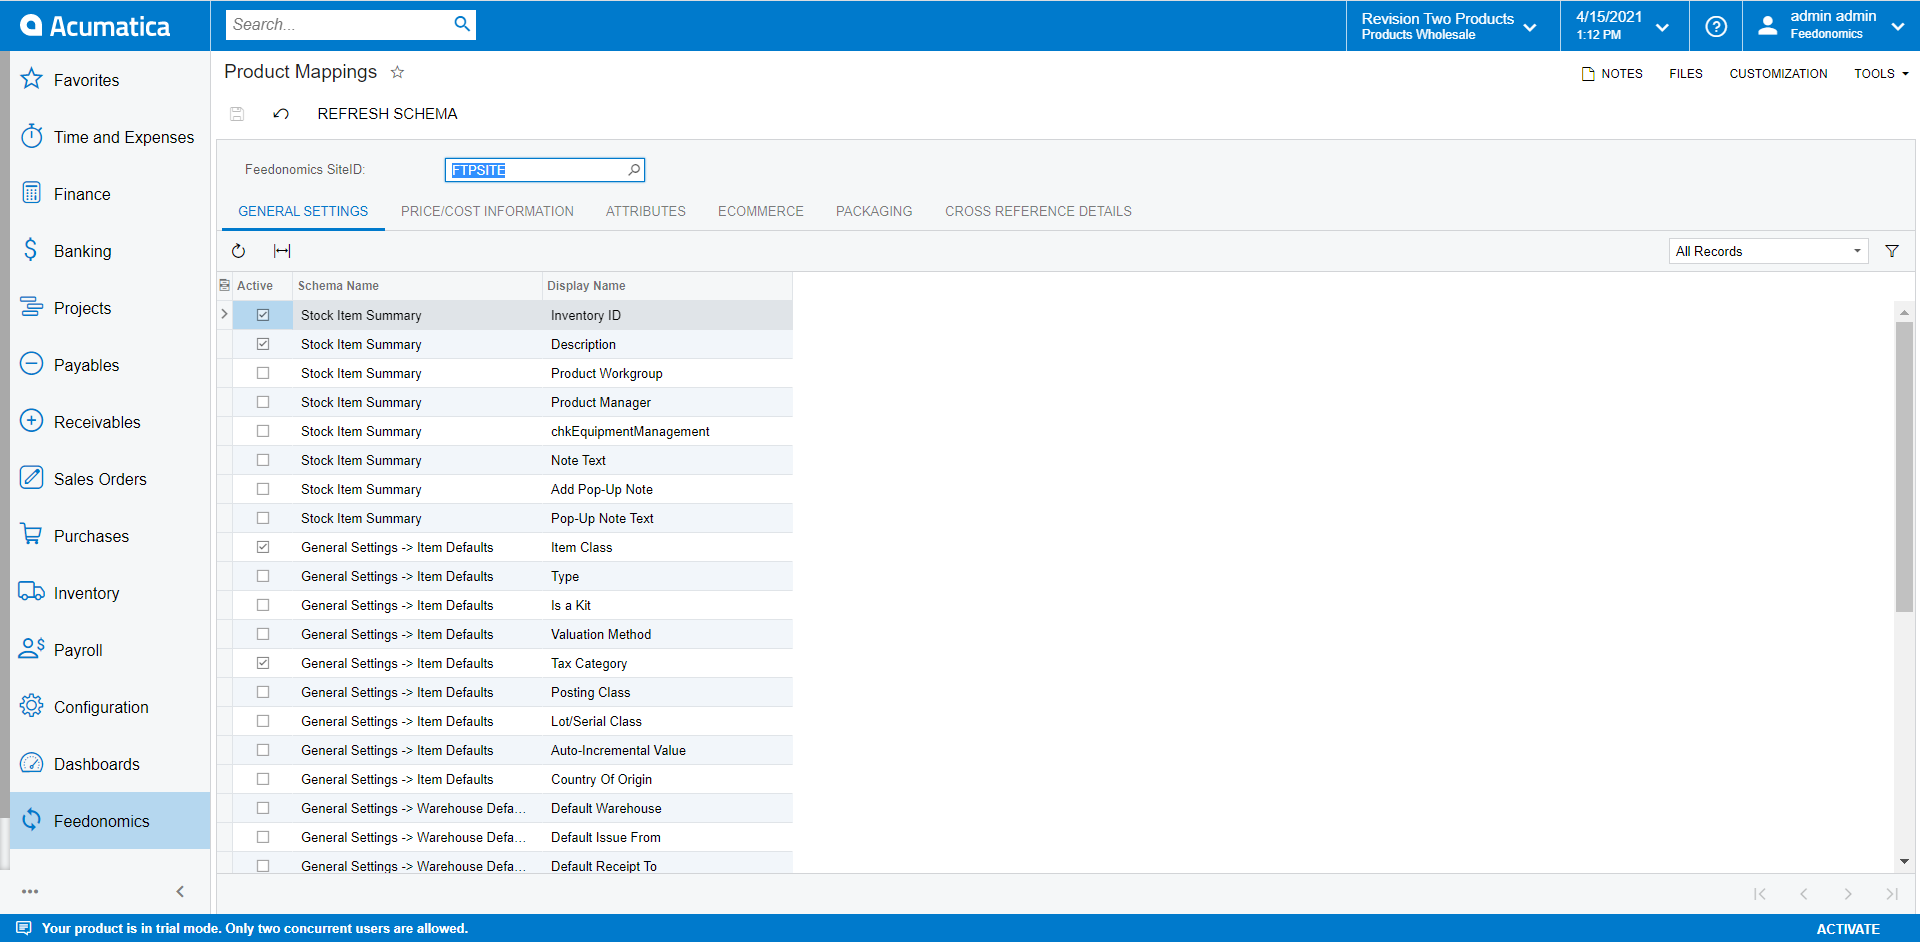 Product Mapping Screen in Acumatica